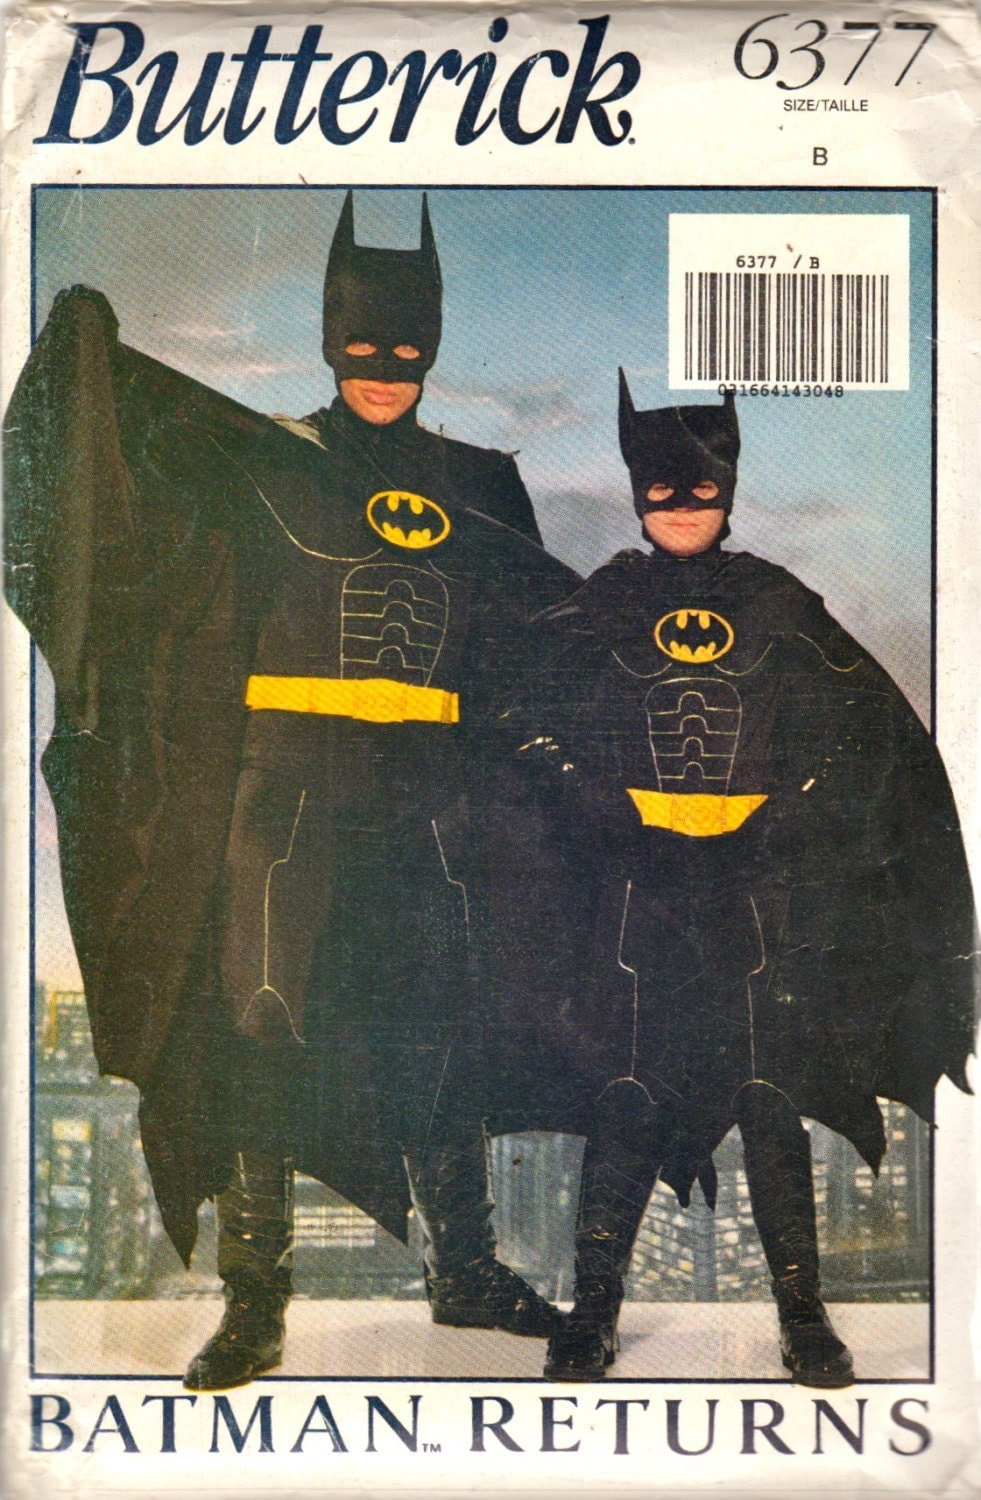 Batman Returns Batman costume pattern - Butterick 6377